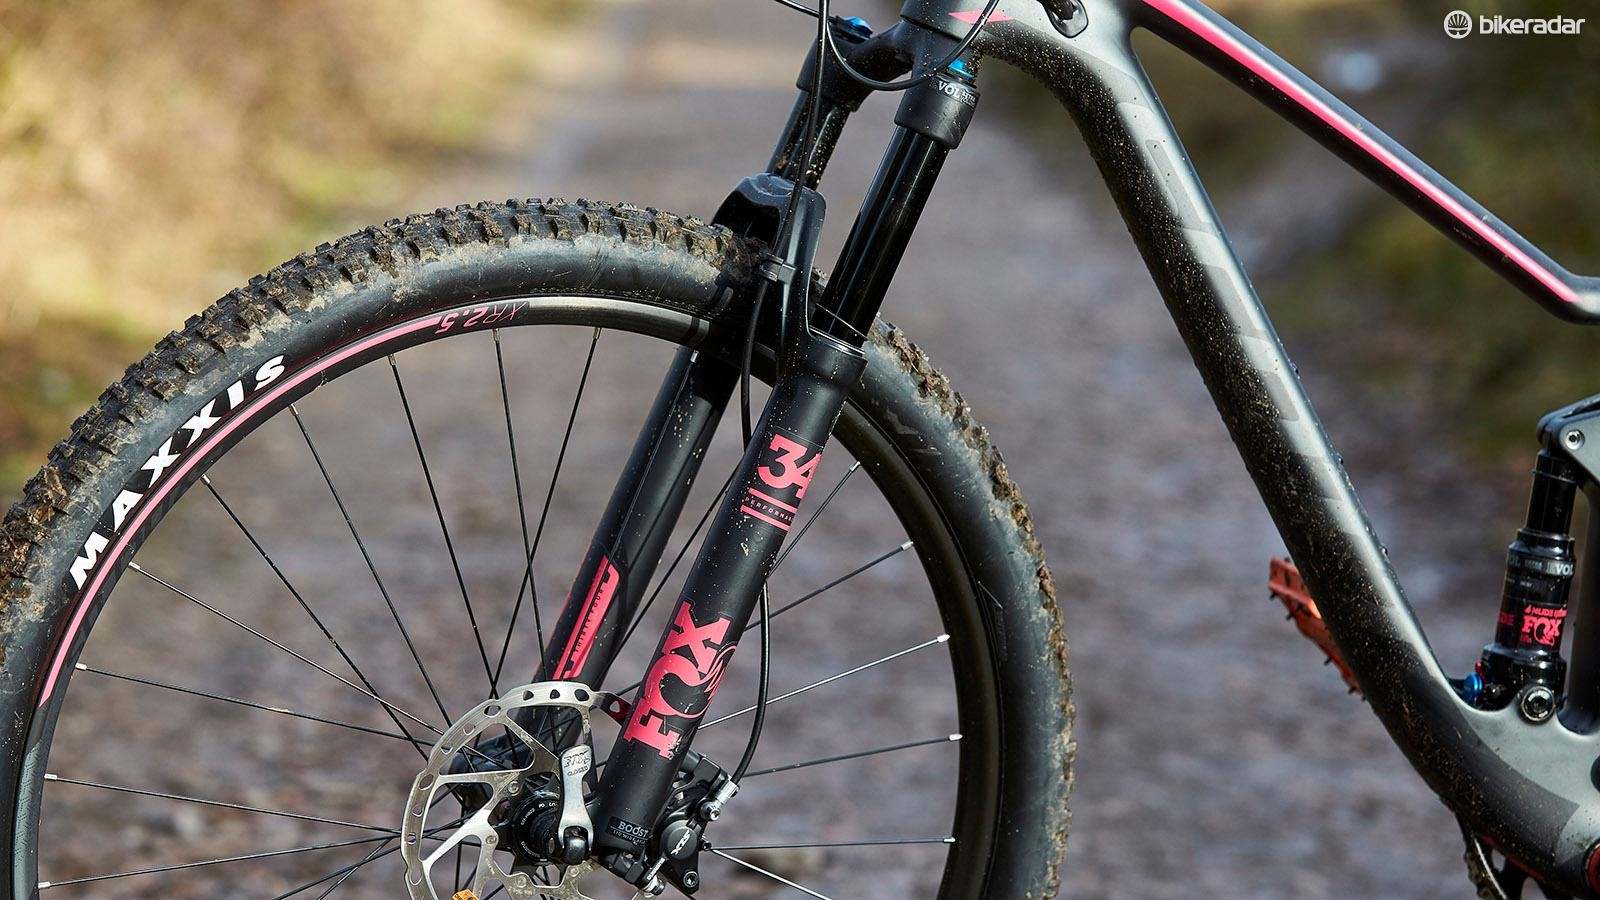 FOX 34 Float Performance forks with 120mm of travel provide suspension up front